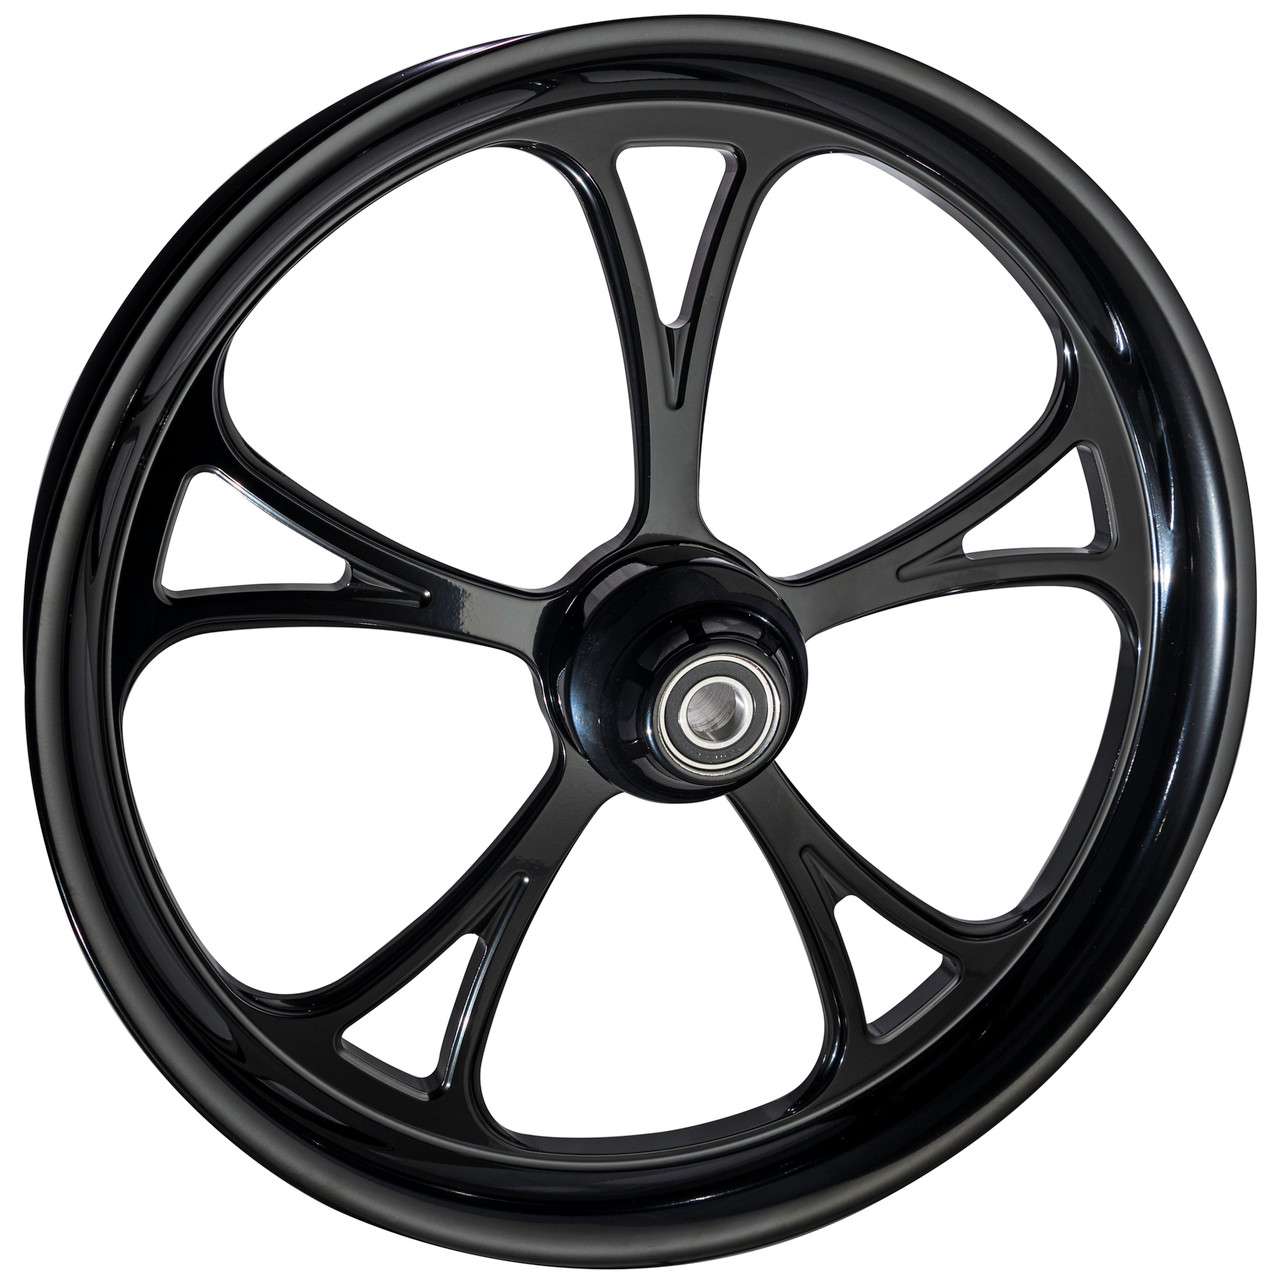 Indian Chieftain Motorcycle Wheels